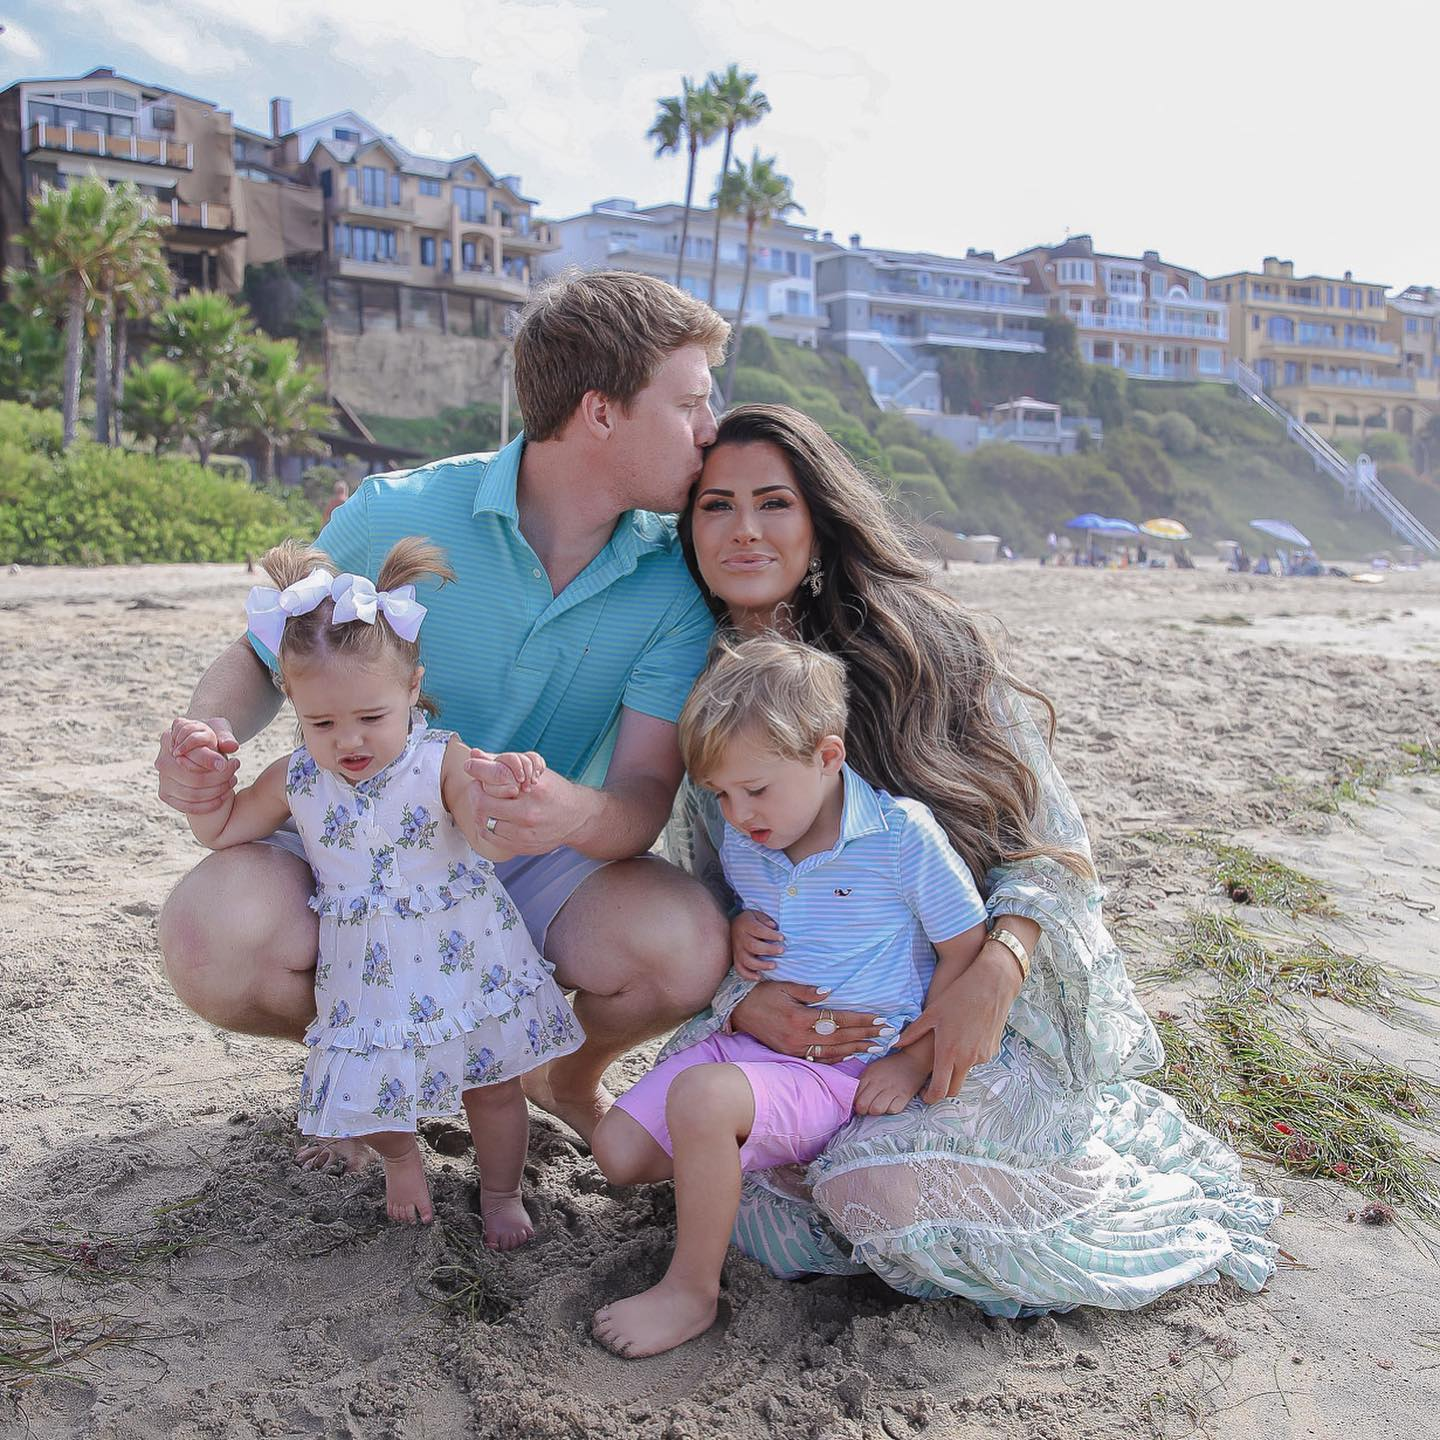 Instagram Recap by popular US lifestyle blog, The Sweetest Thing: image of Emily Gemma and her husband and kids kneeling together in the sand at the beach.